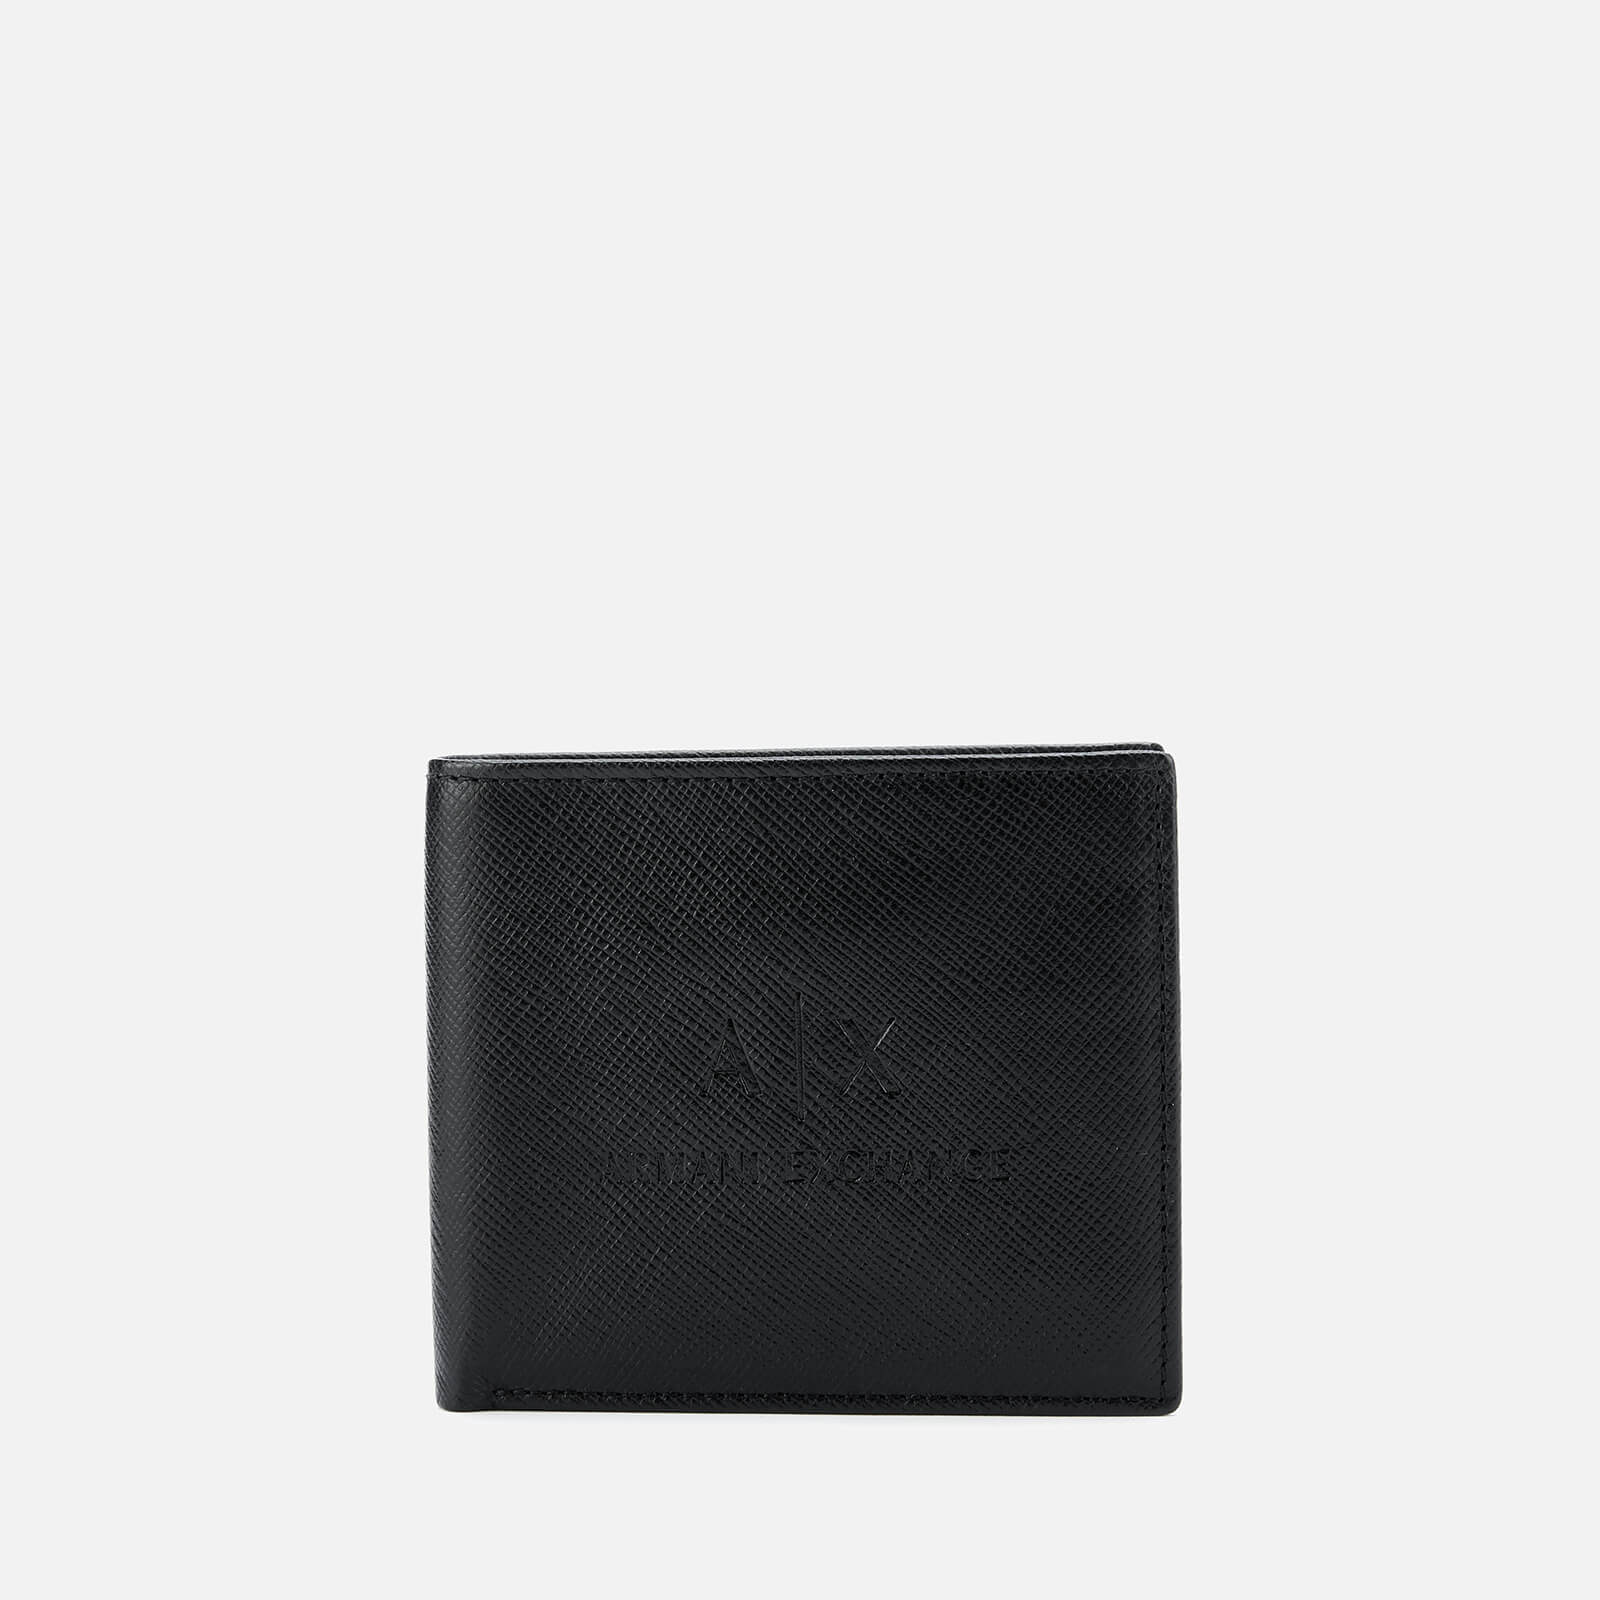 reputable site 1e449 c1031 Armani Exchange Men's AX Logo Bifold Wallet with Credit Card Holder - Black